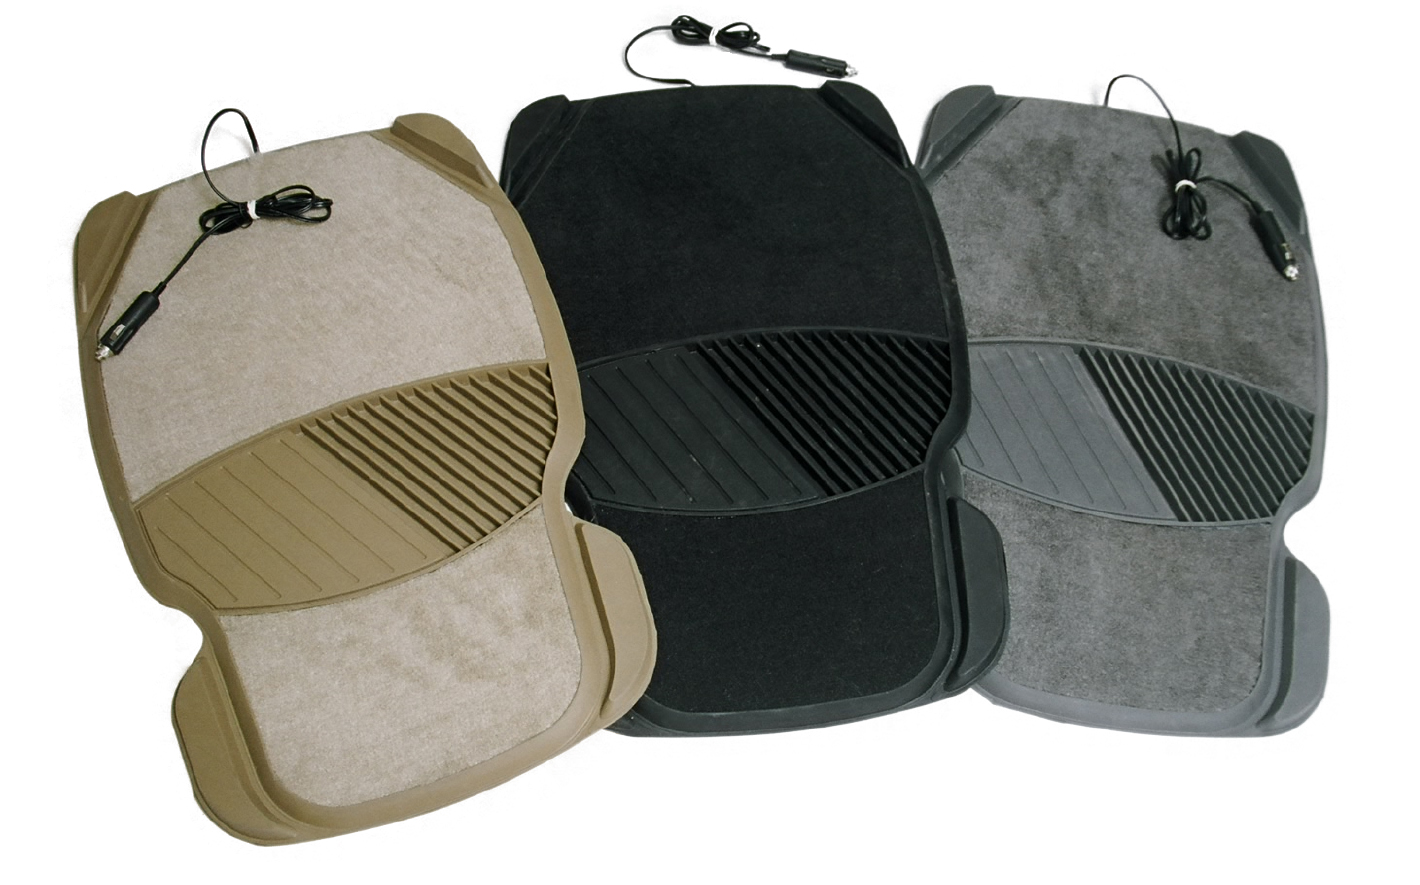 The Heated Car Mat from MartinsonNicholls Warms Feet and